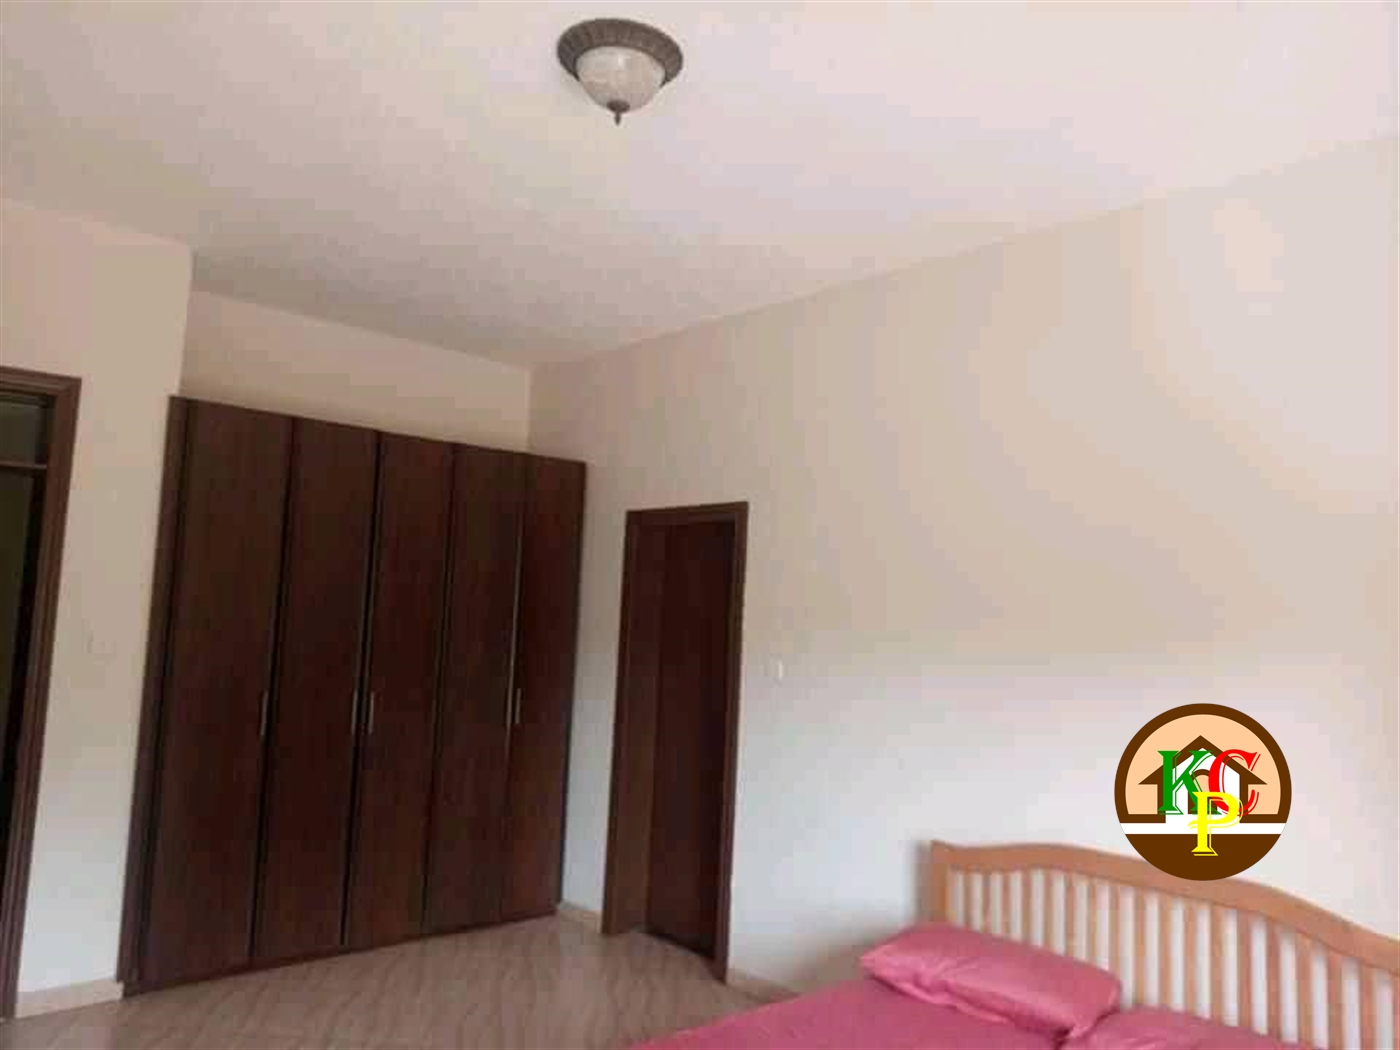 Penthouse for rent in Luzira Kampala